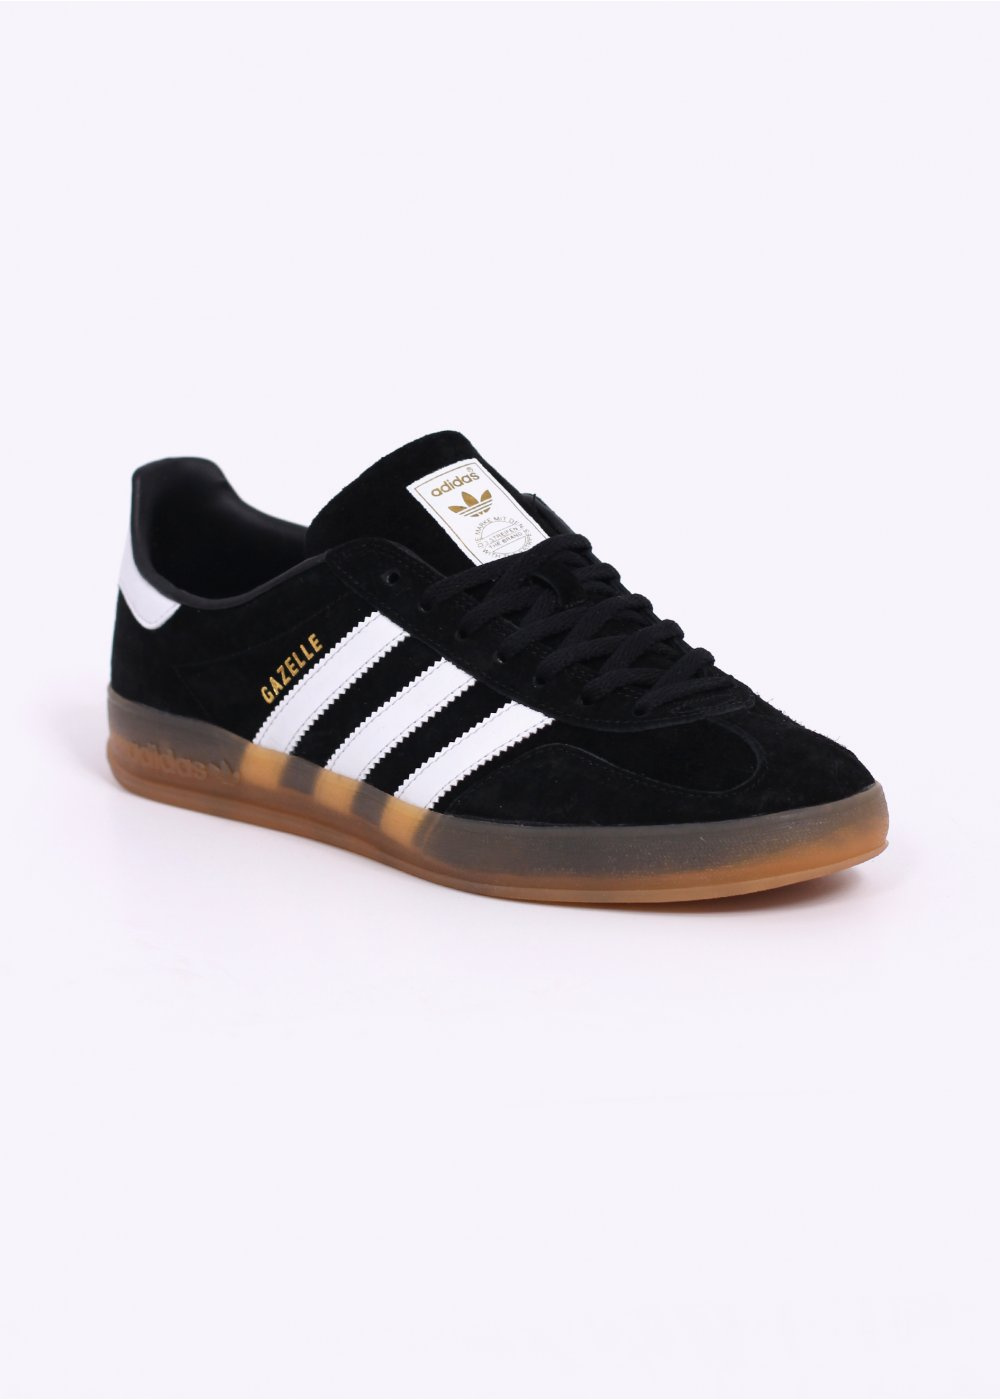 Adidas Originals Suede Black